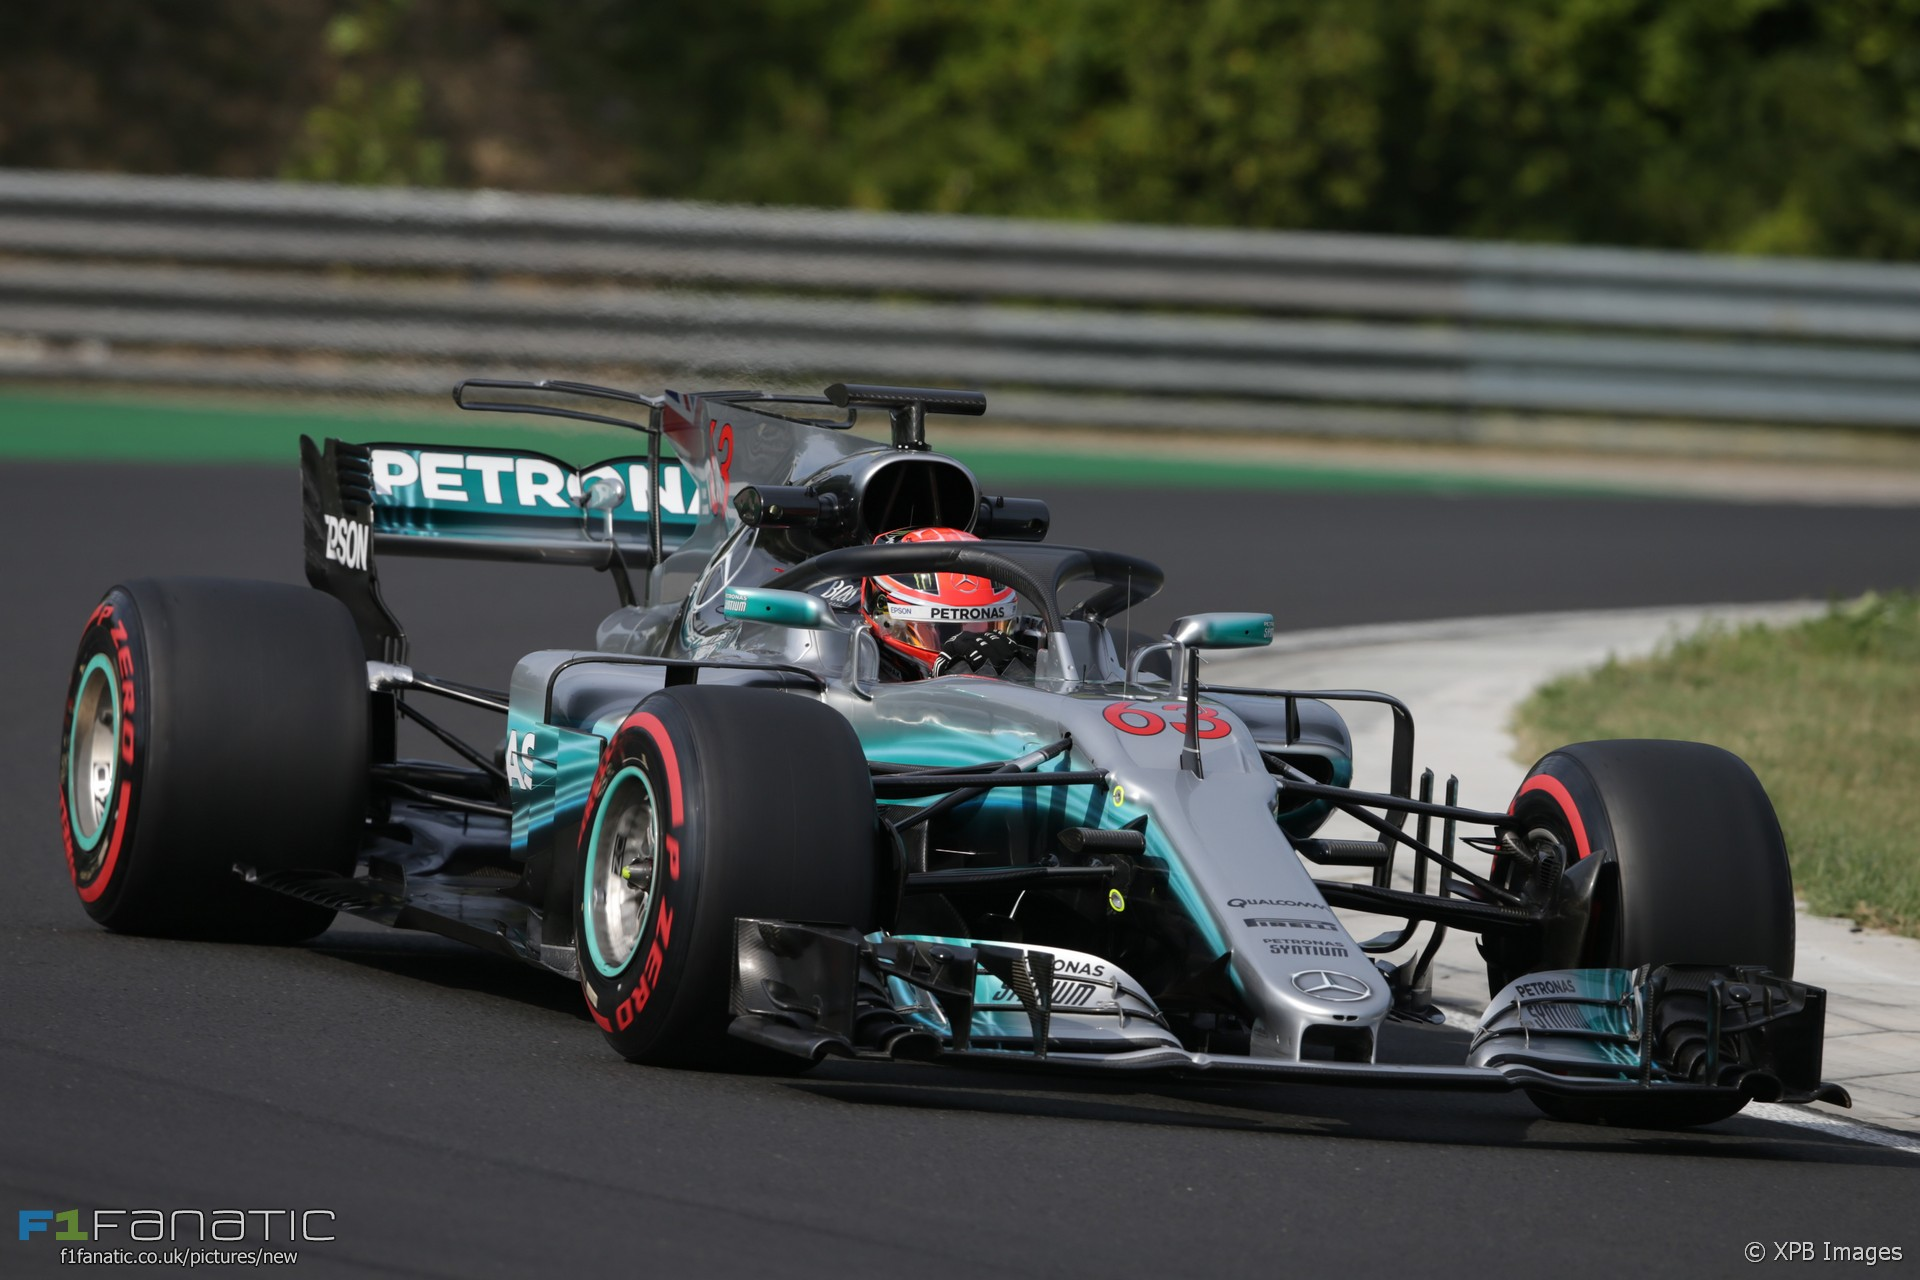 George Russell test the Halo, Mercedes, Hungaroring, 2017 · F1 Fanatic